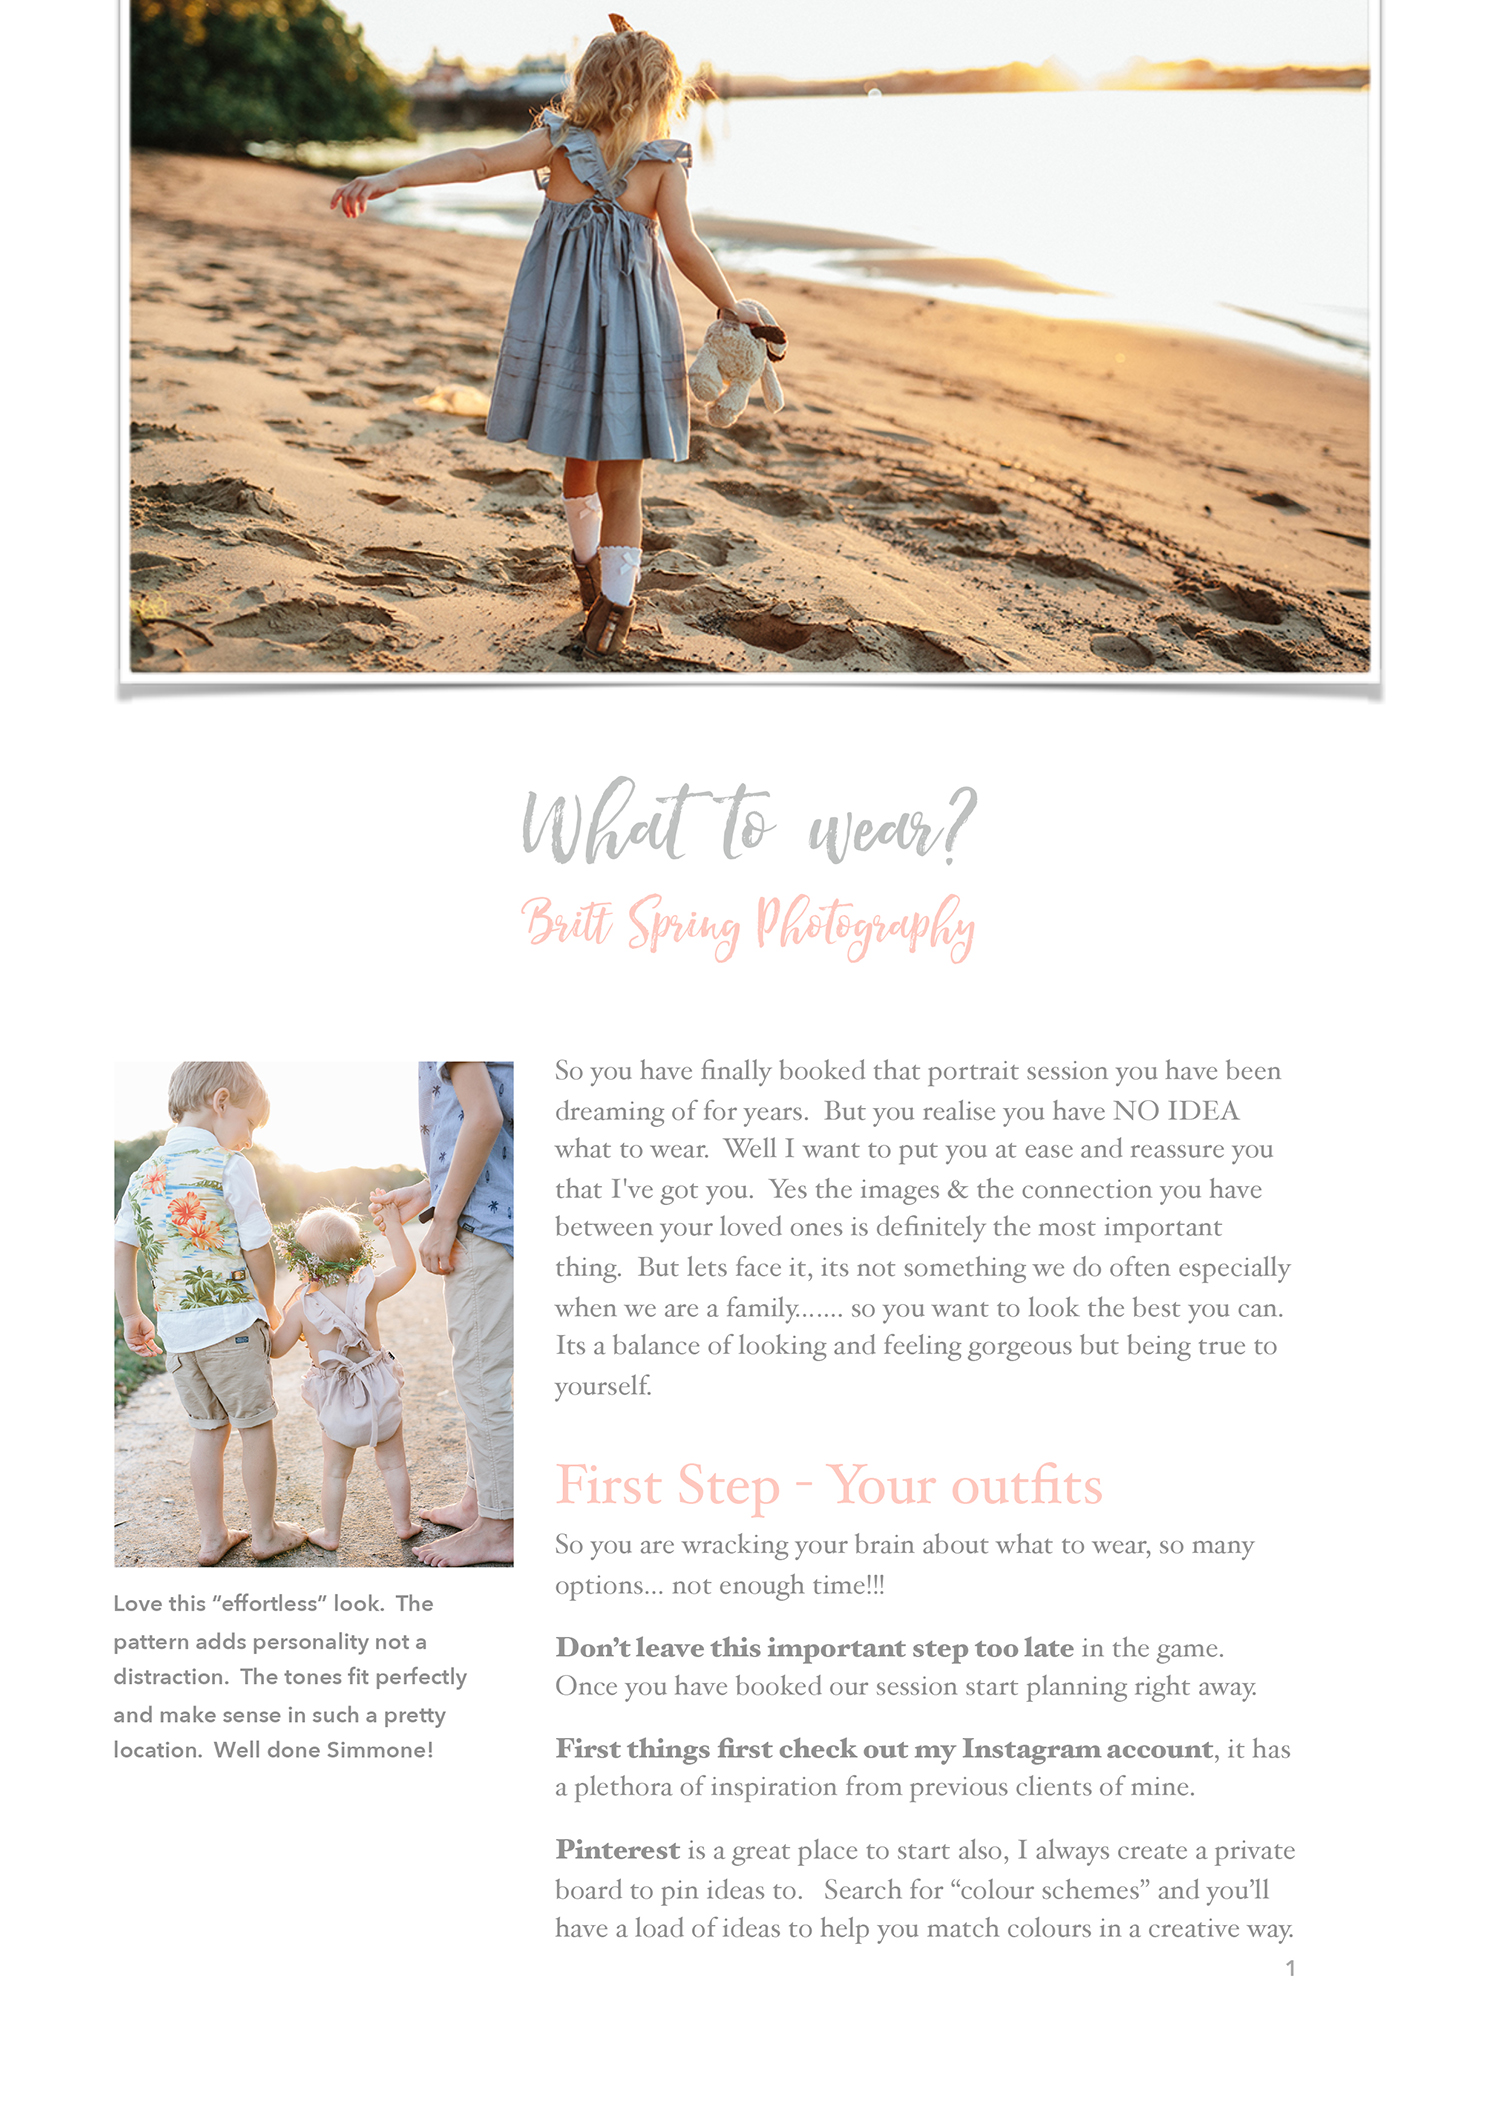 Styling-tips-for-your-photoshoot-brisbane